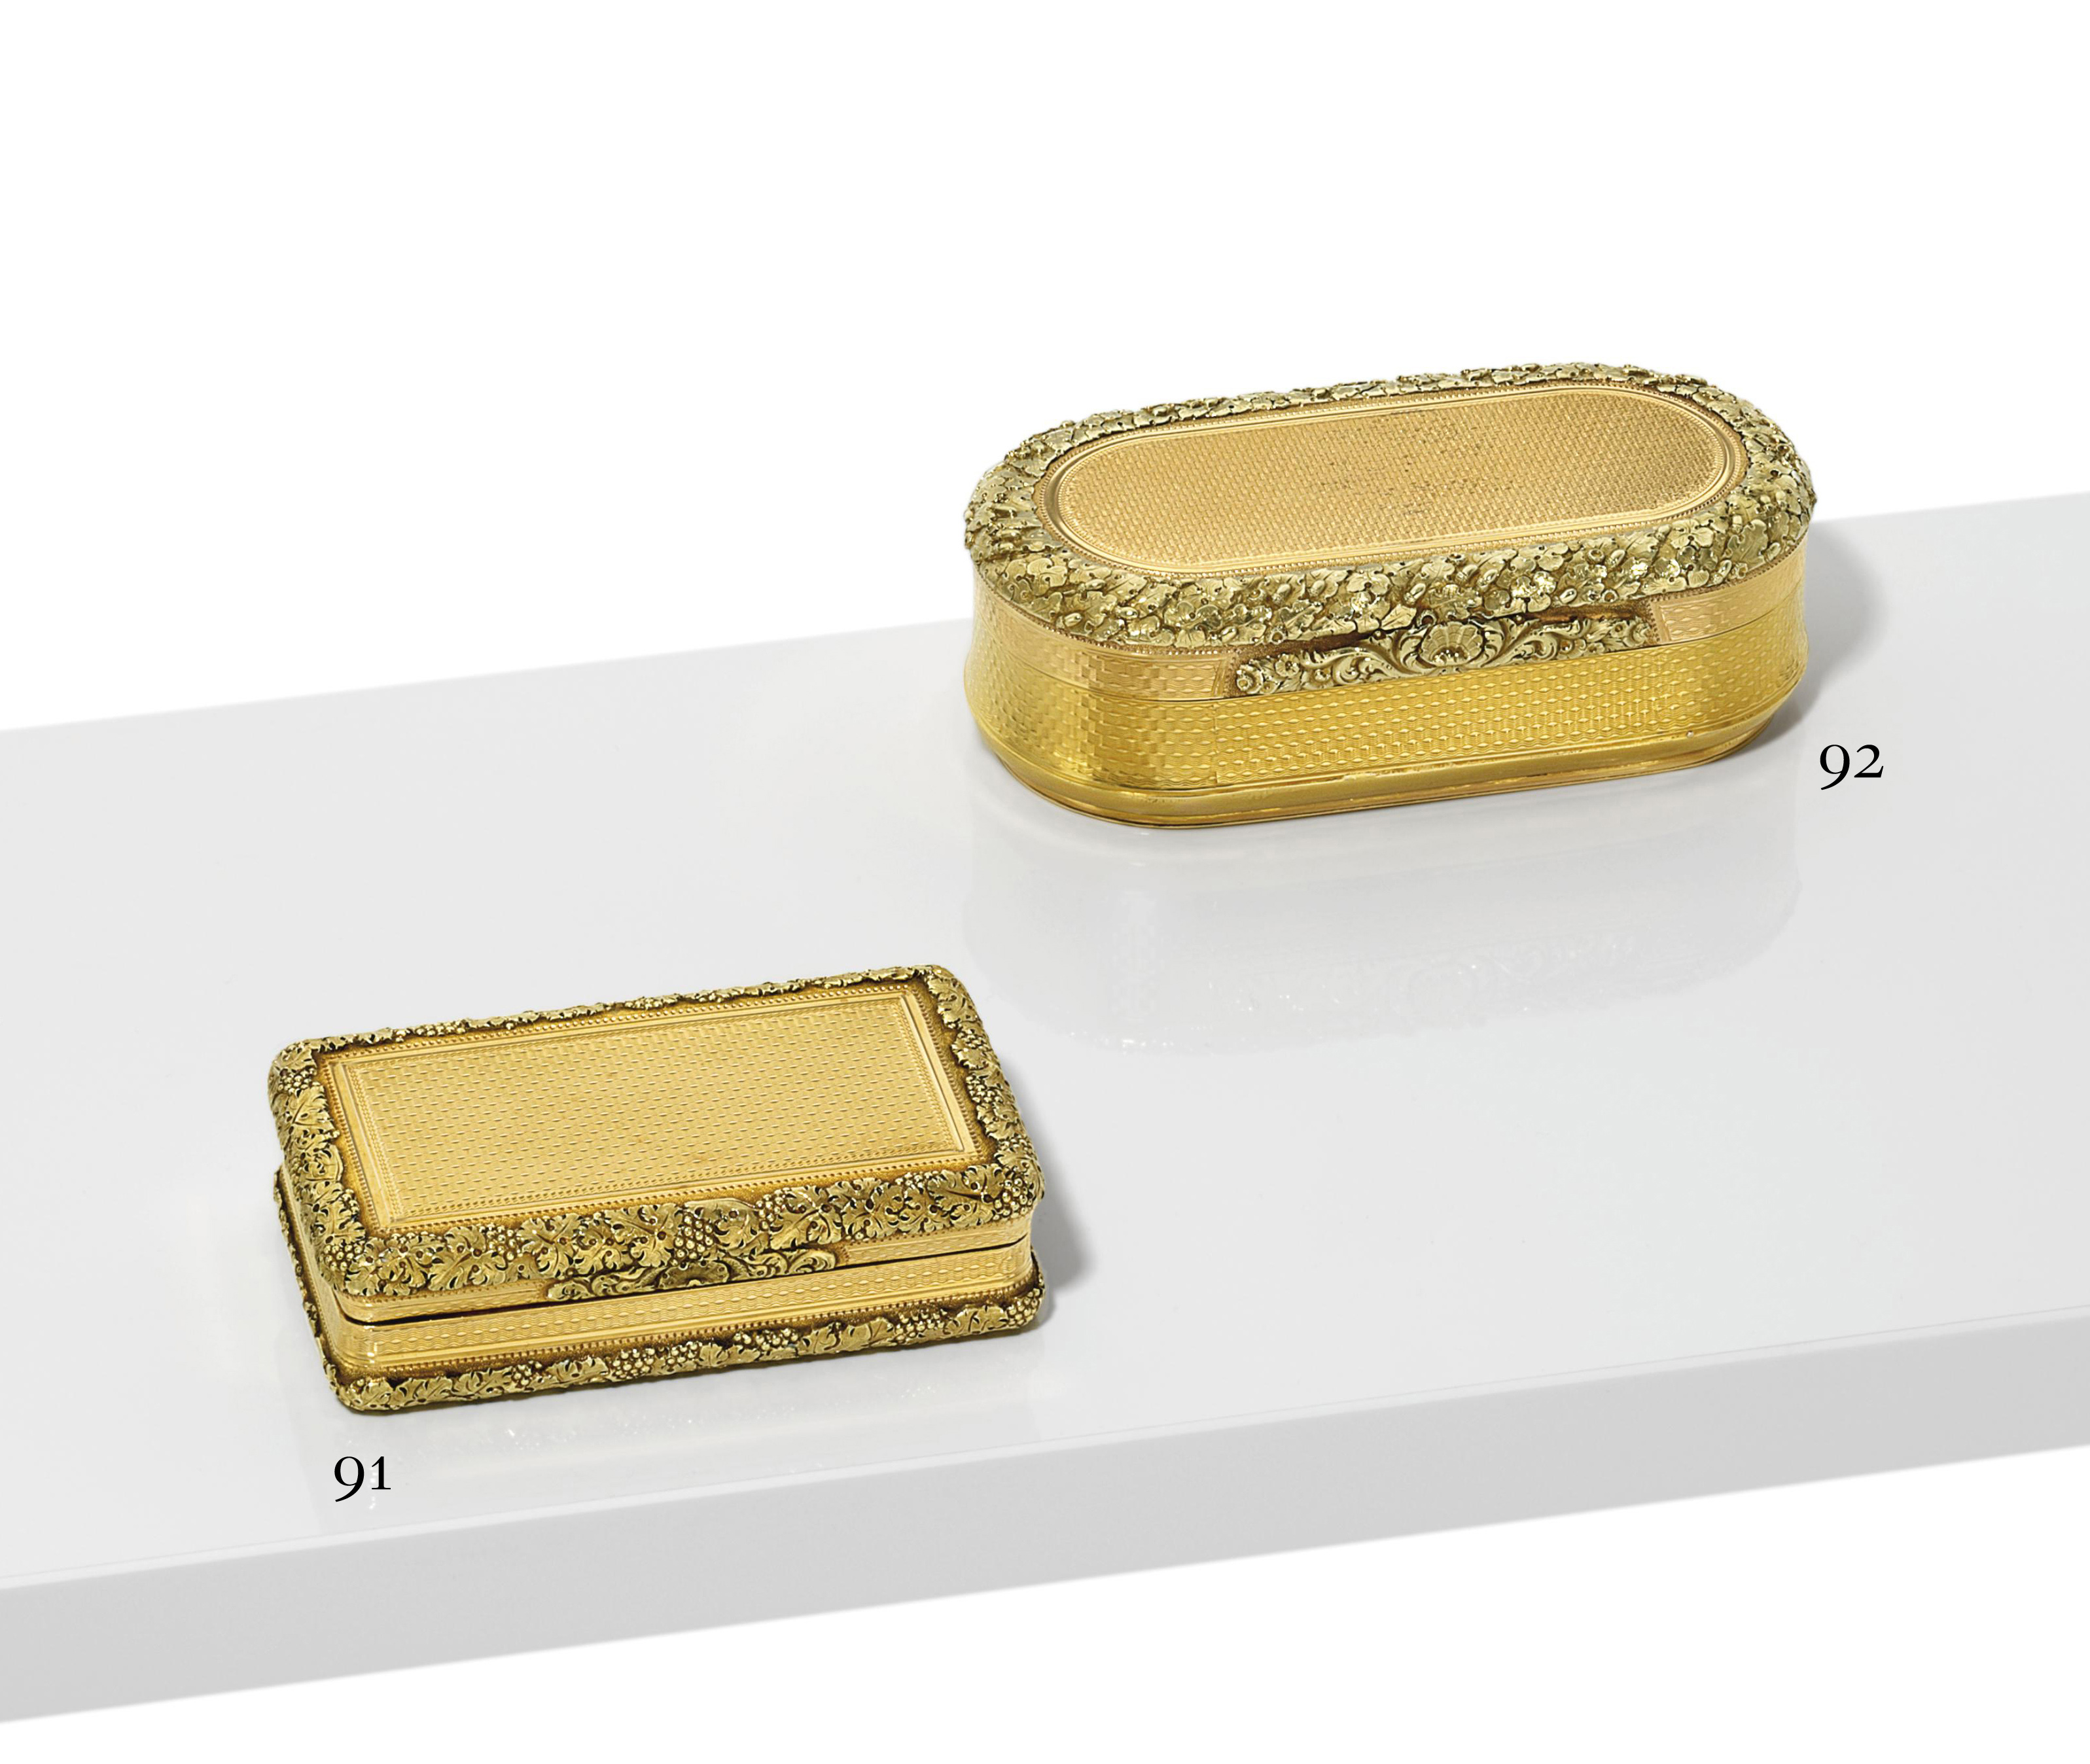 A GEORGE III THREE-COLOUR GOLD SNUFF-BOX